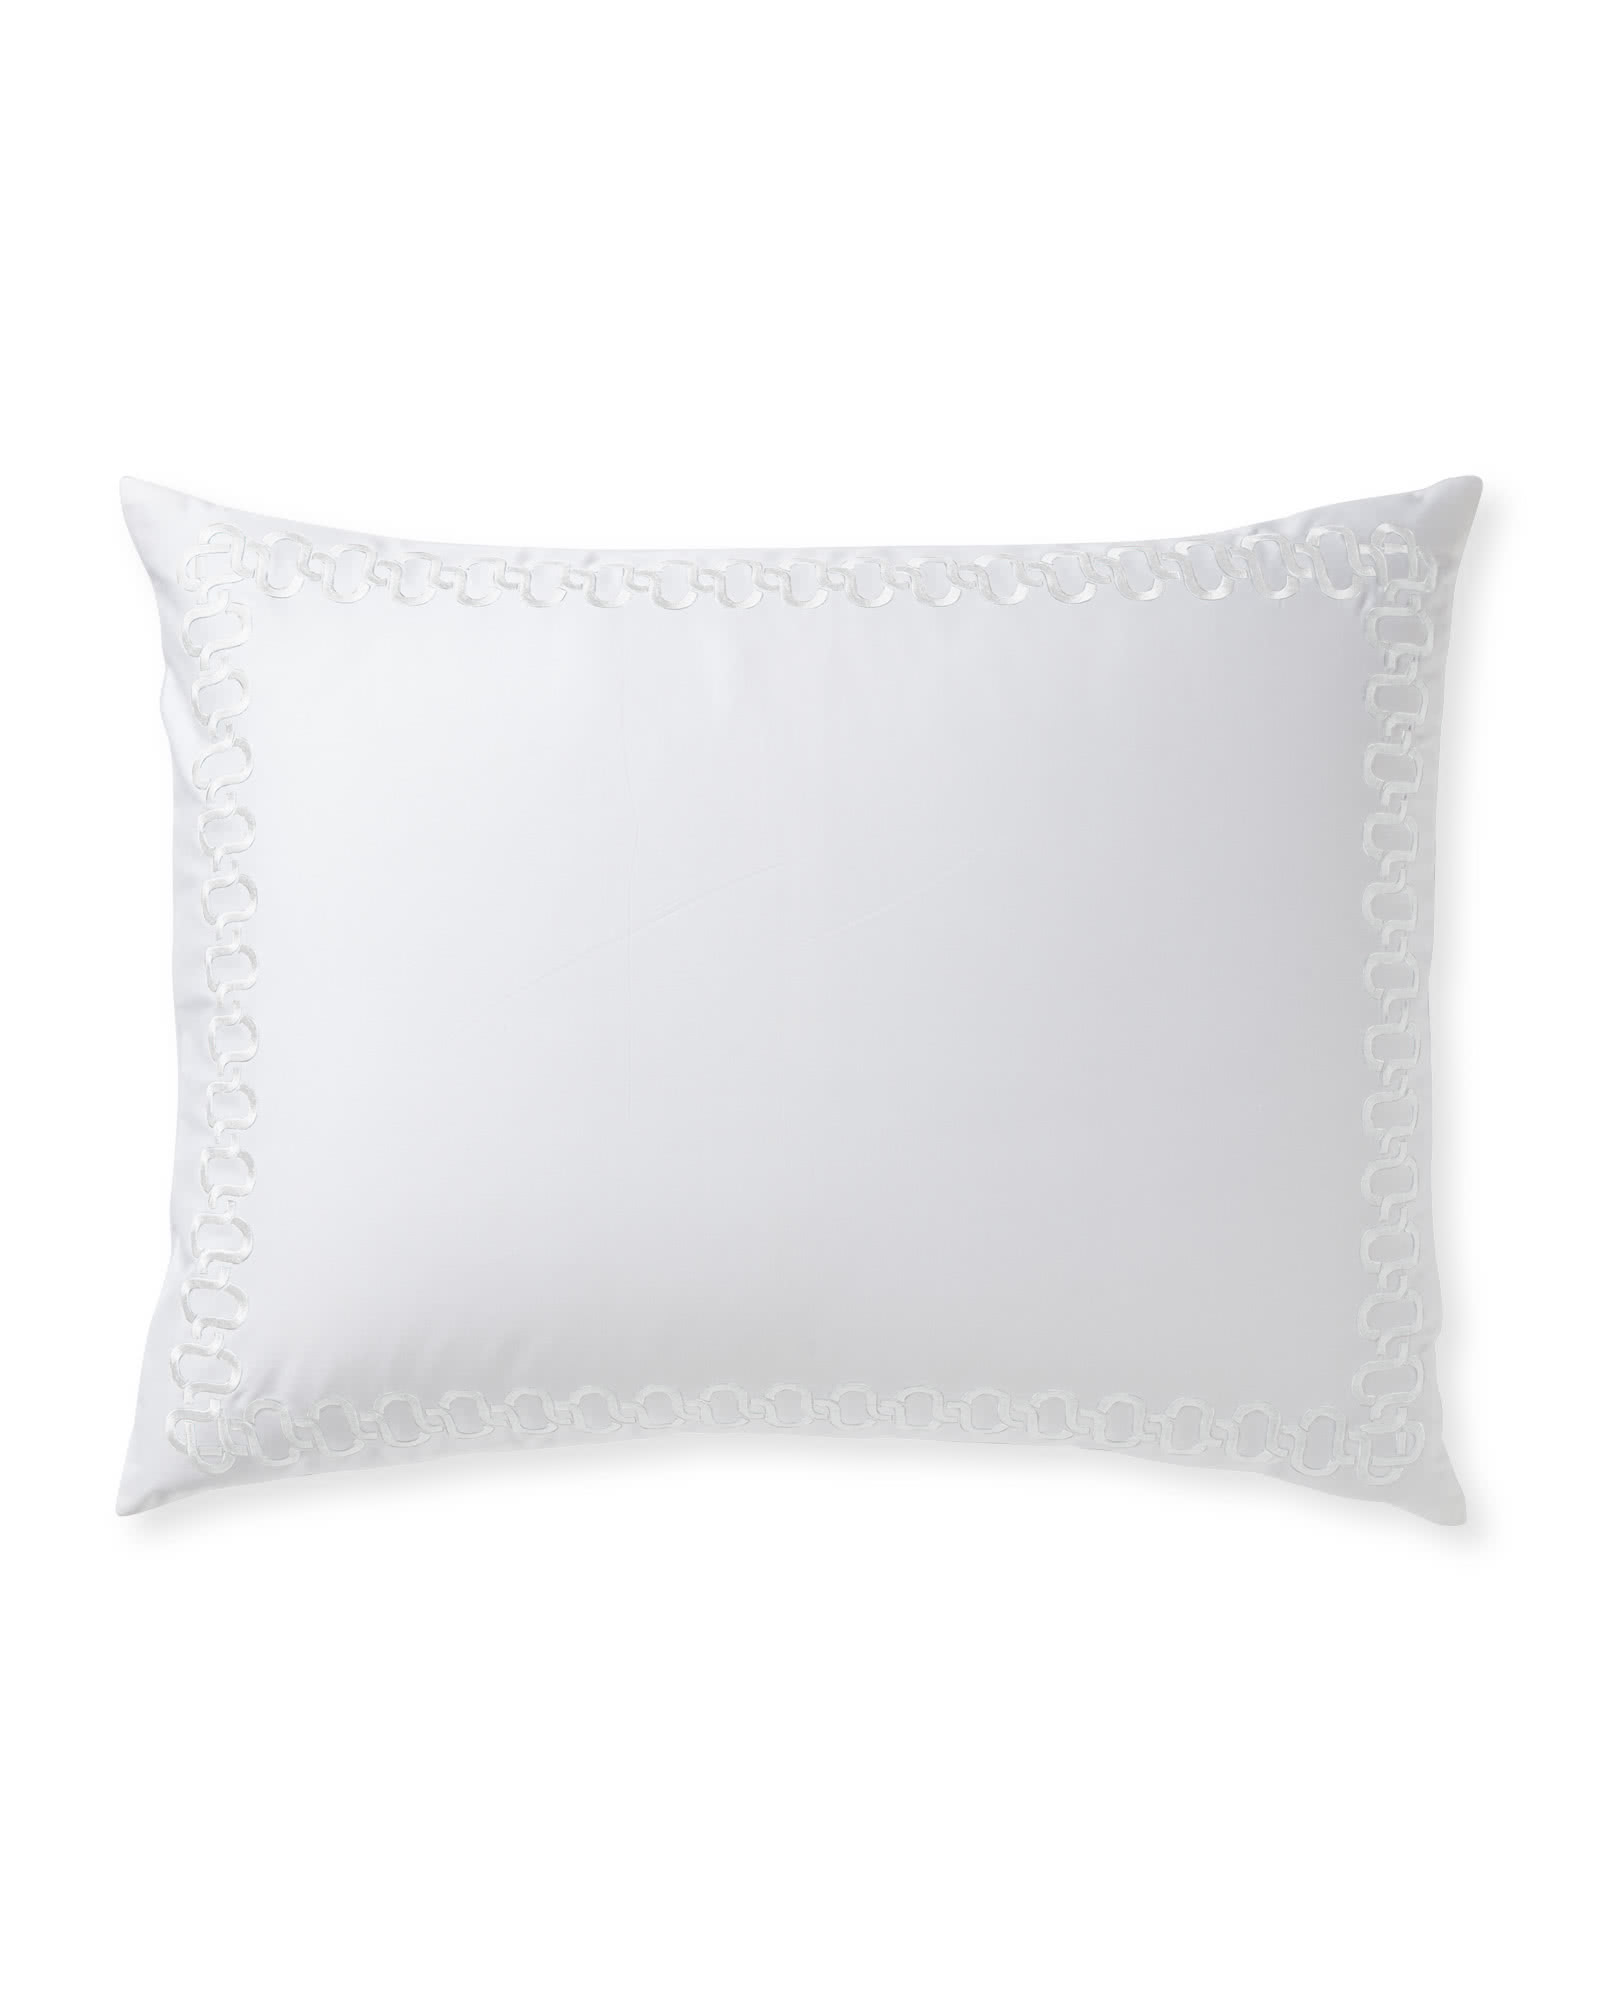 Savoy Embroidered Shams, White